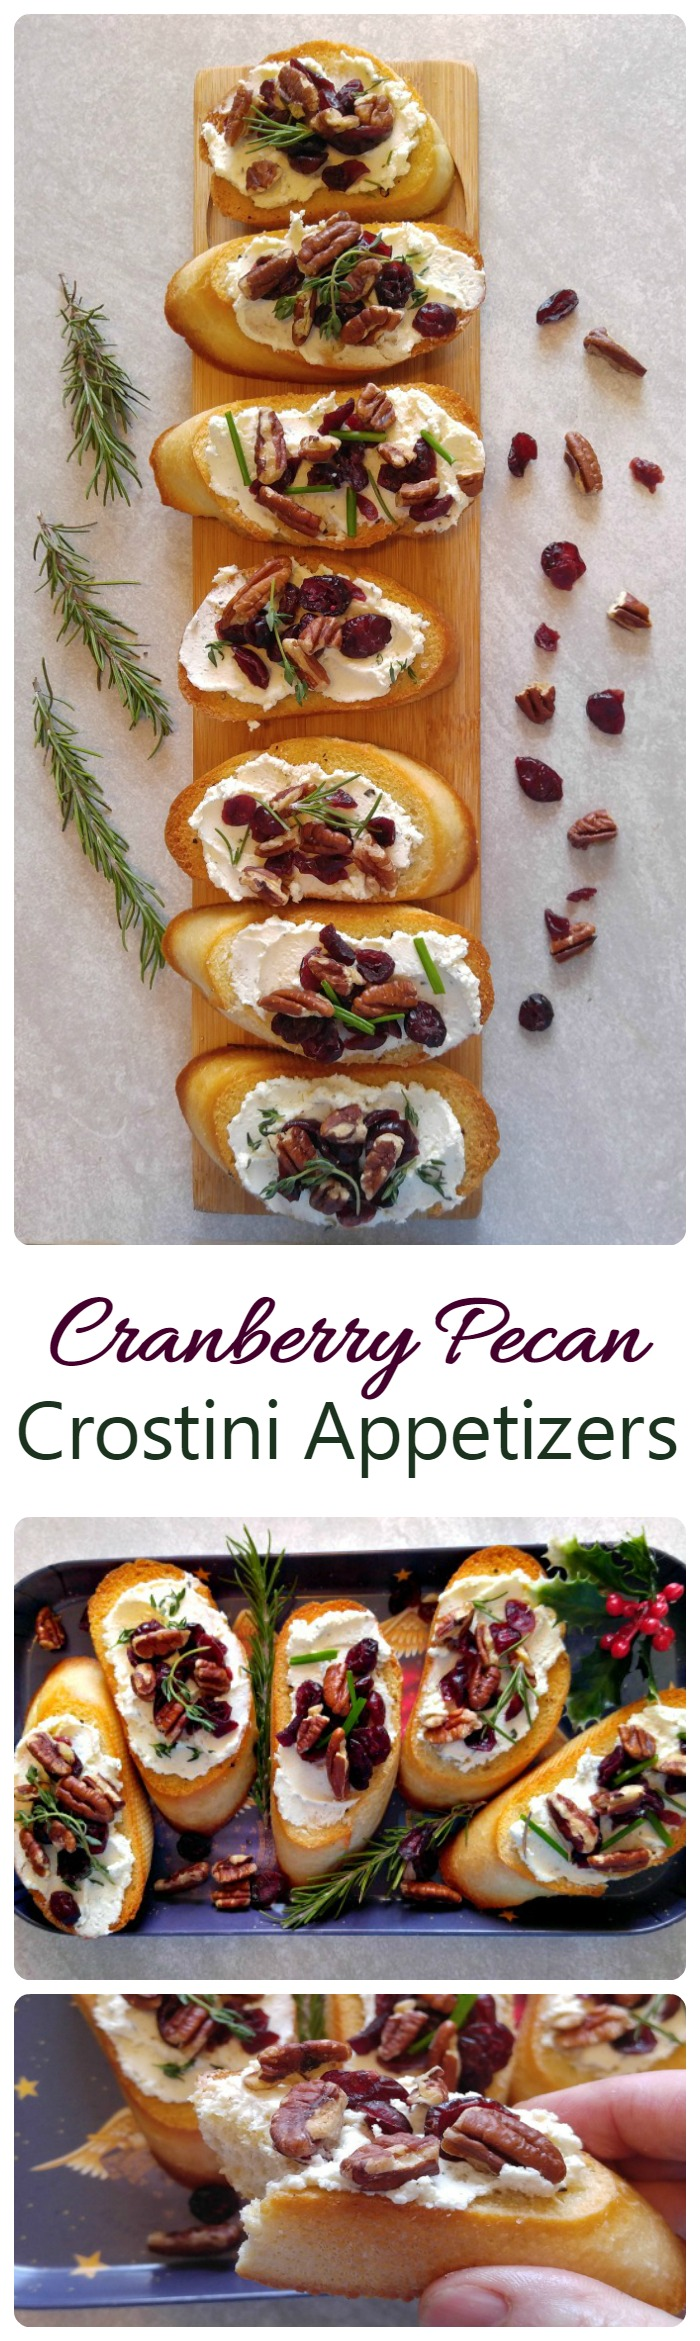 These cranberry pecan crostini appetizers are so easy to make and the cheese spread goes beautifully with the toppings. #ad #BoursinCheese